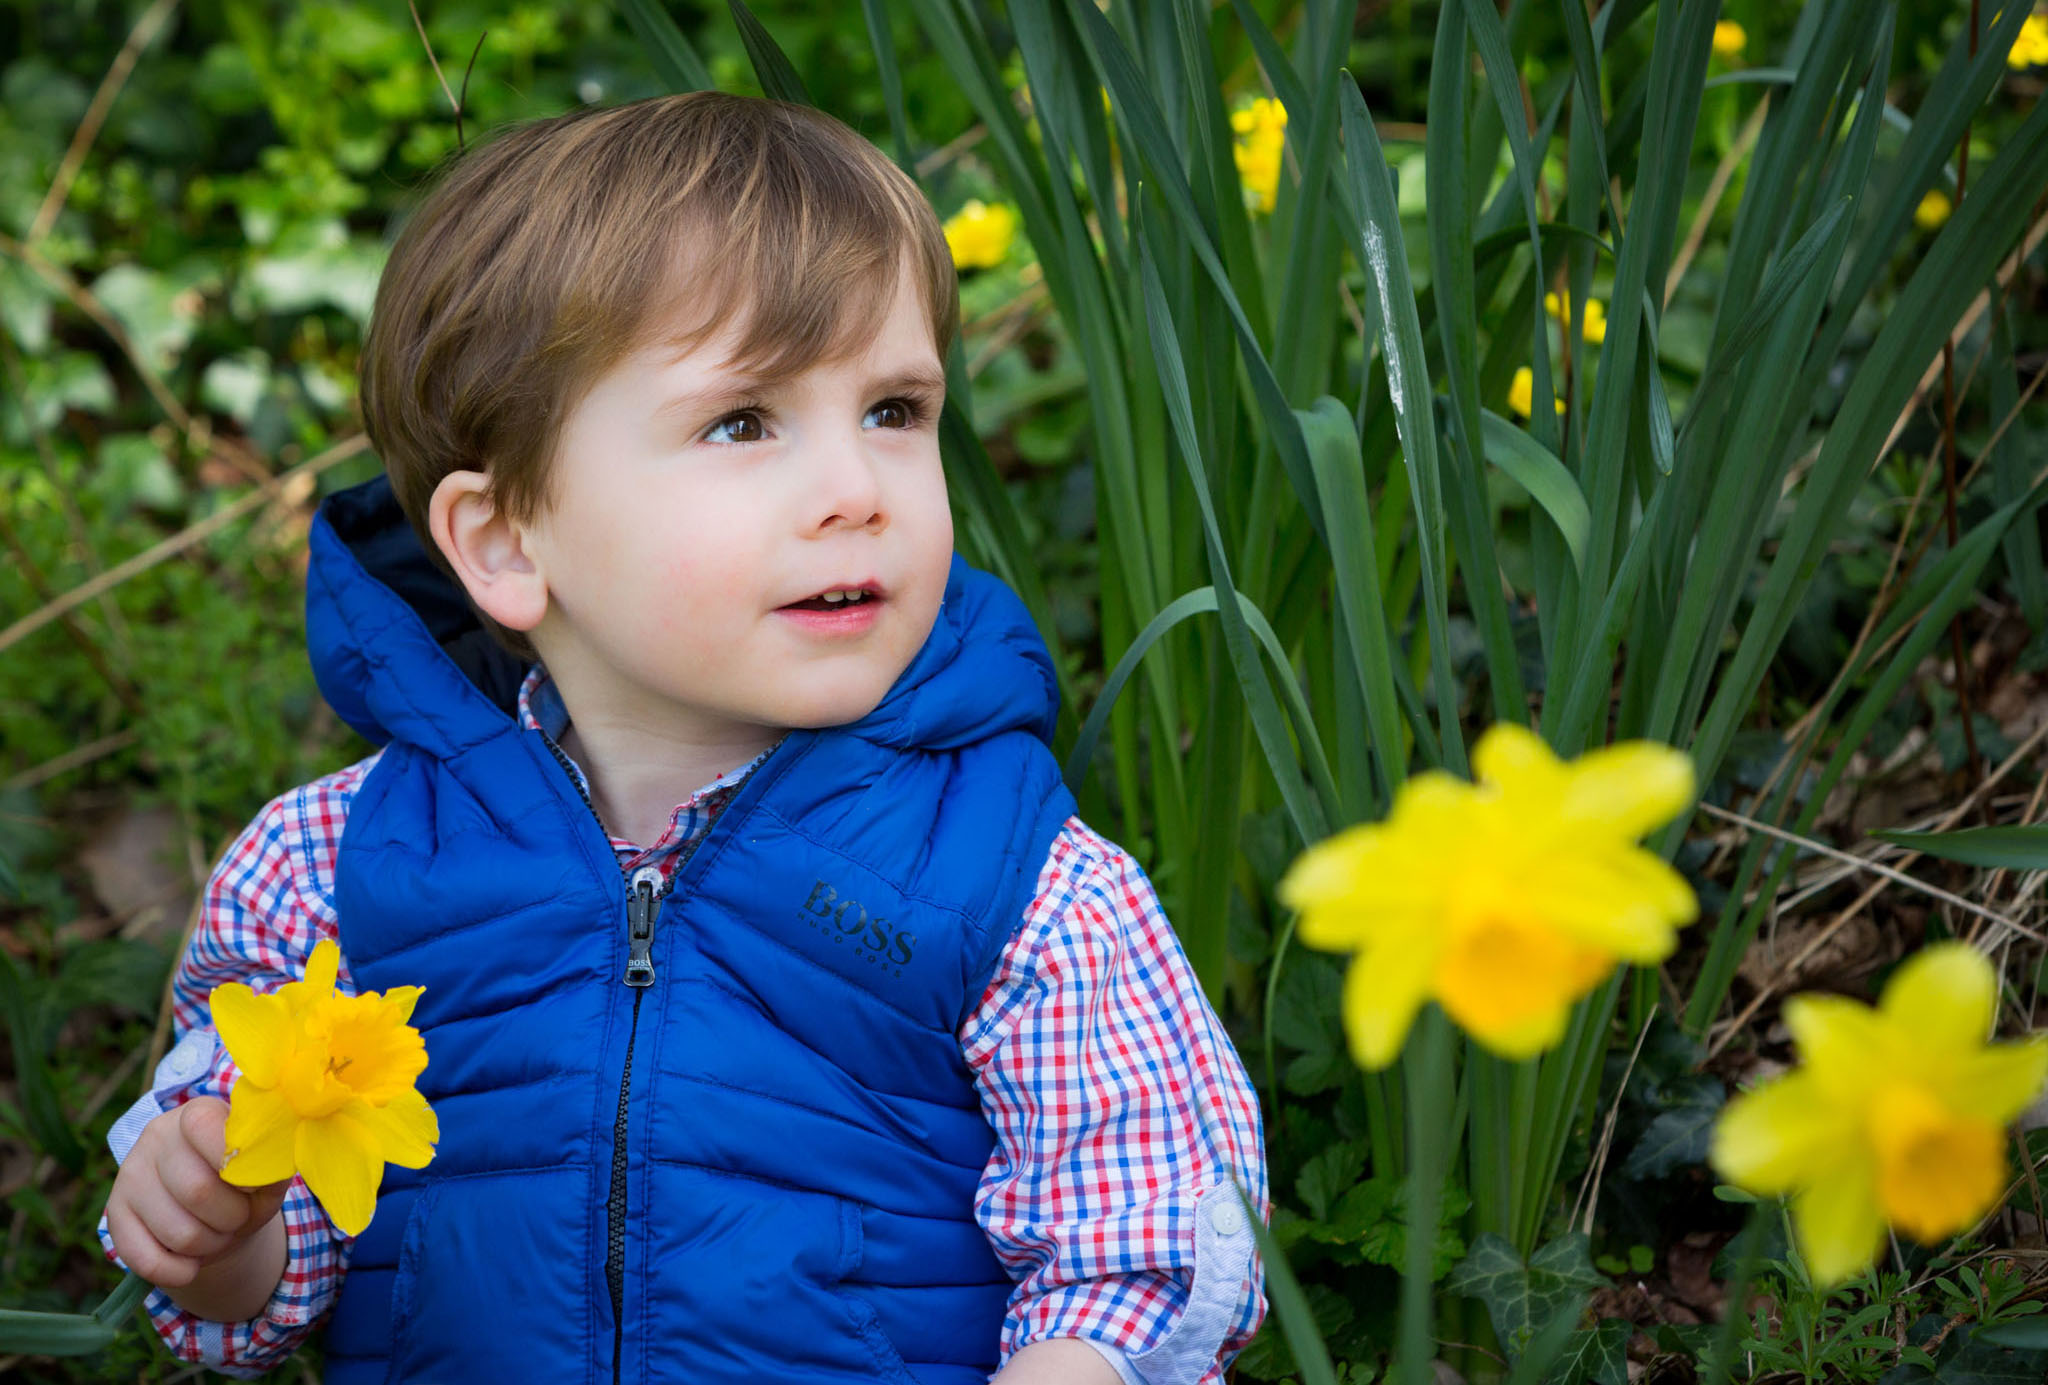 Portrait of a young boy sitting amongst daffodils in Lymm Cheshire